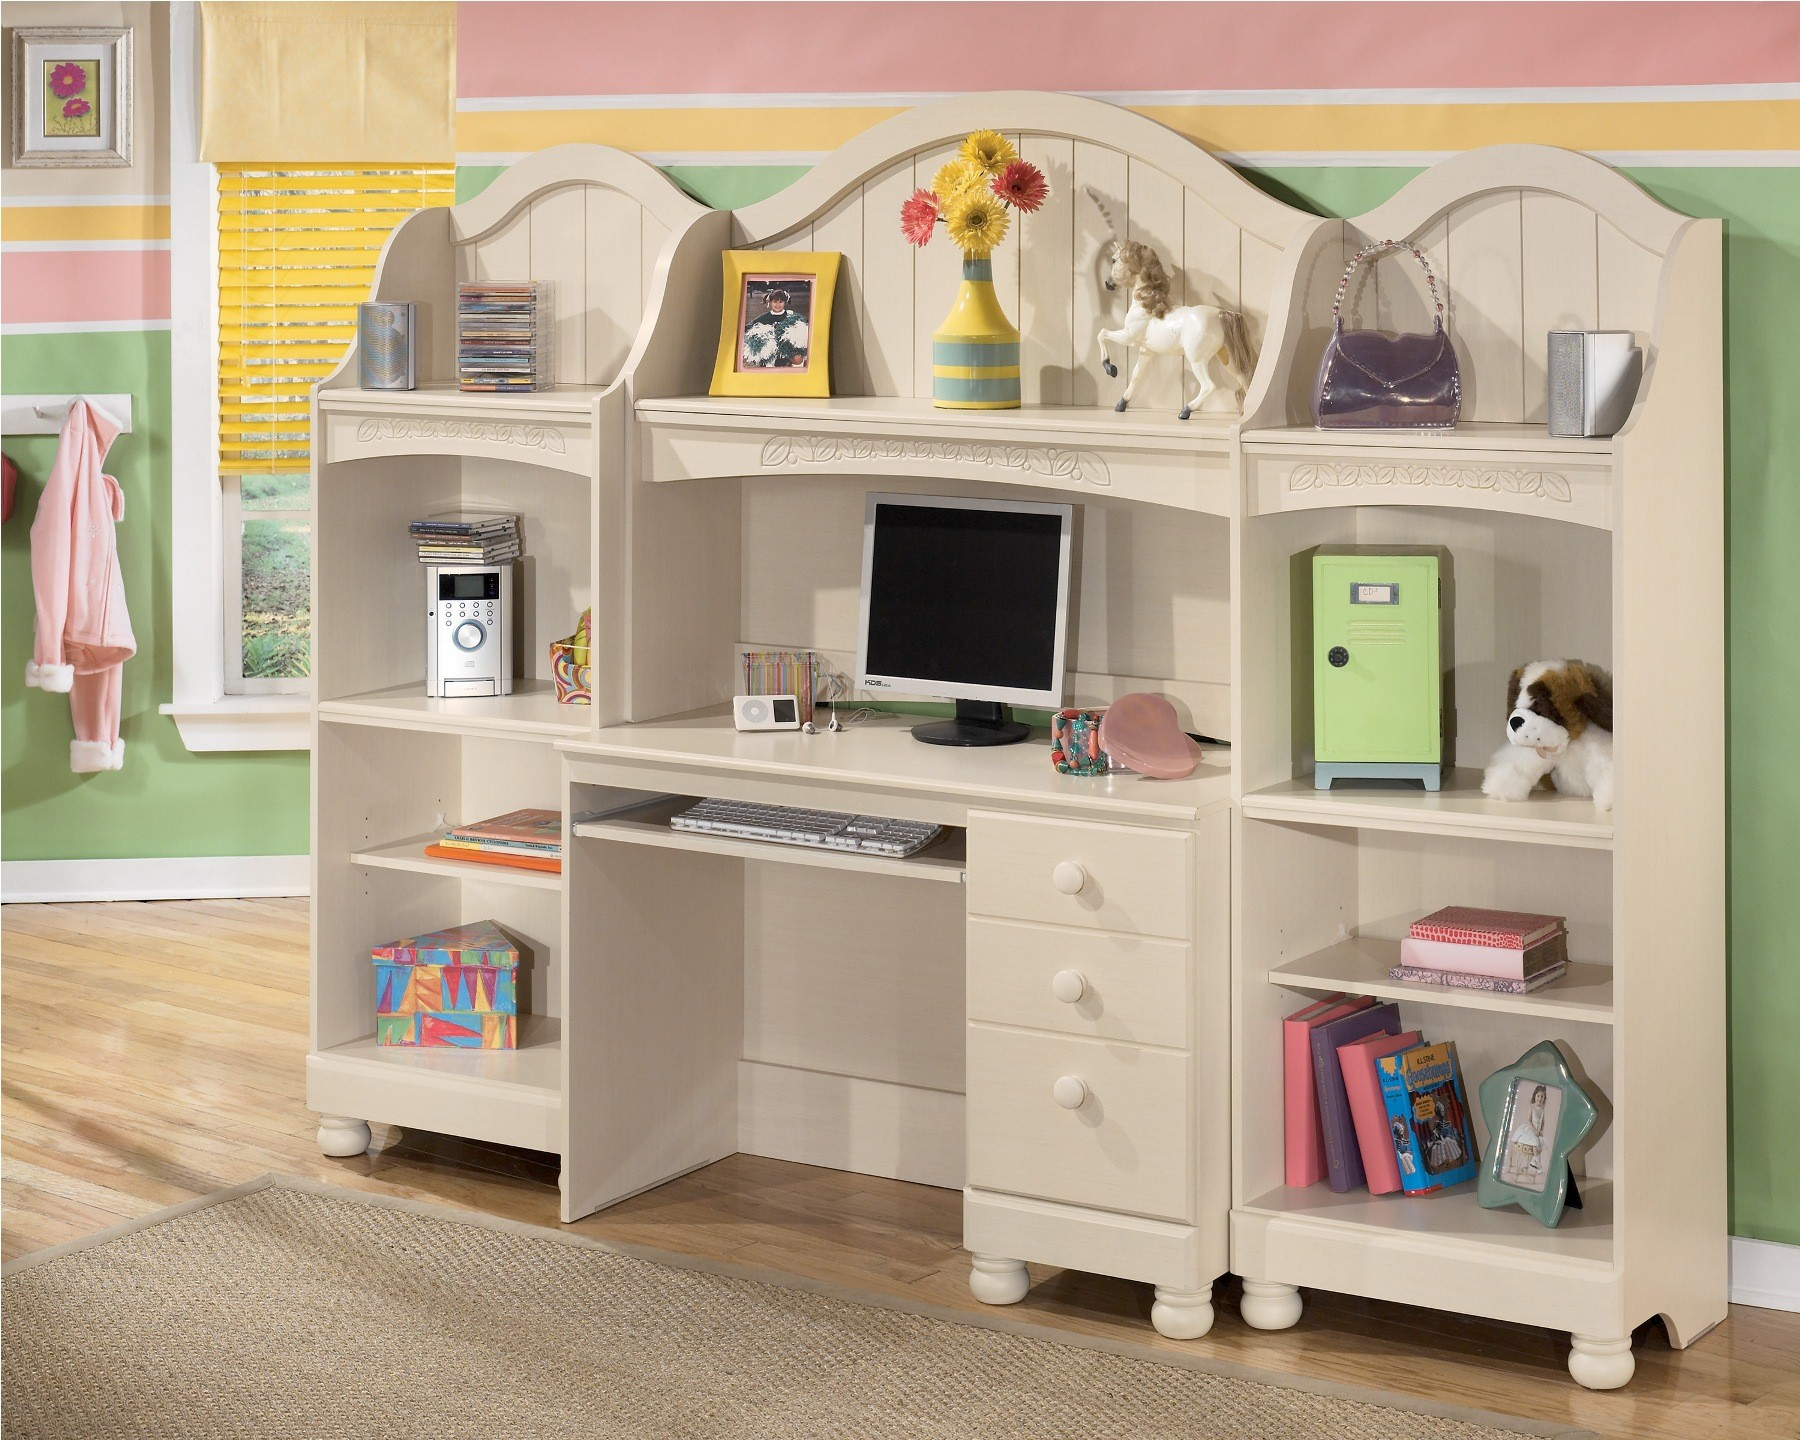 furniture bedroom buy cottage retreat brilliant with kaslyn ashley girls panel new practical sets set kids